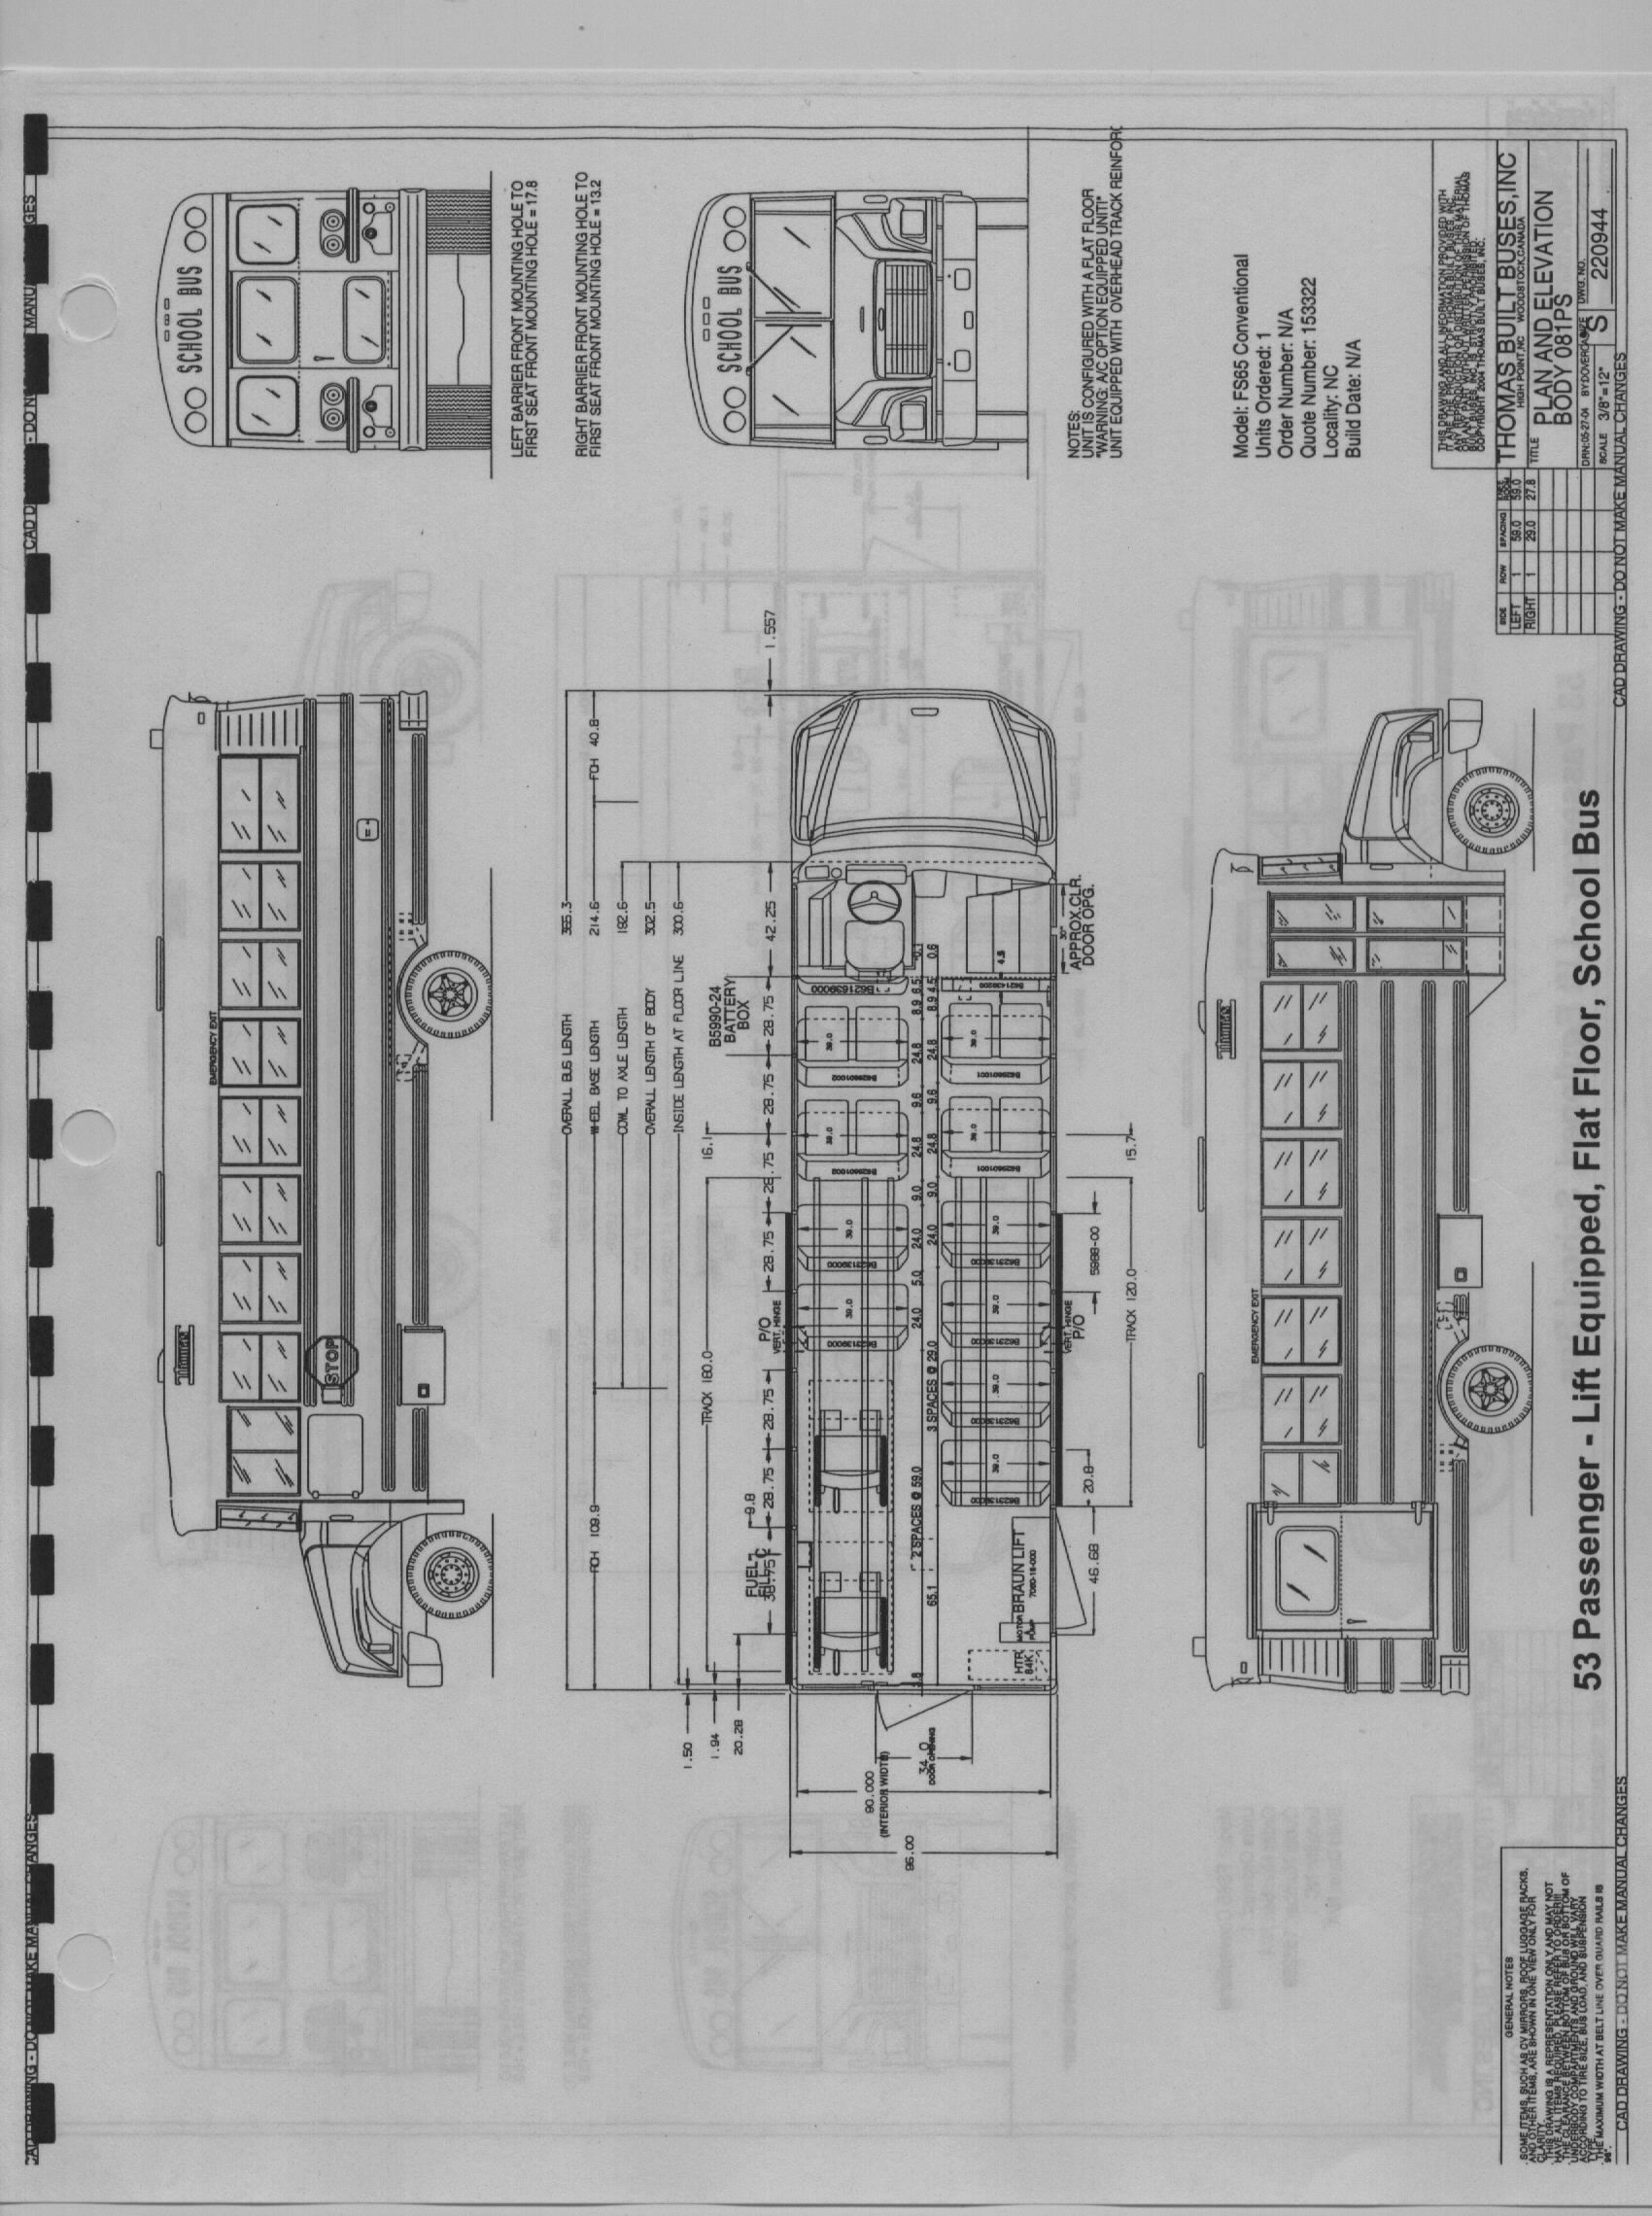 Eagle Bus Wiring Schematics